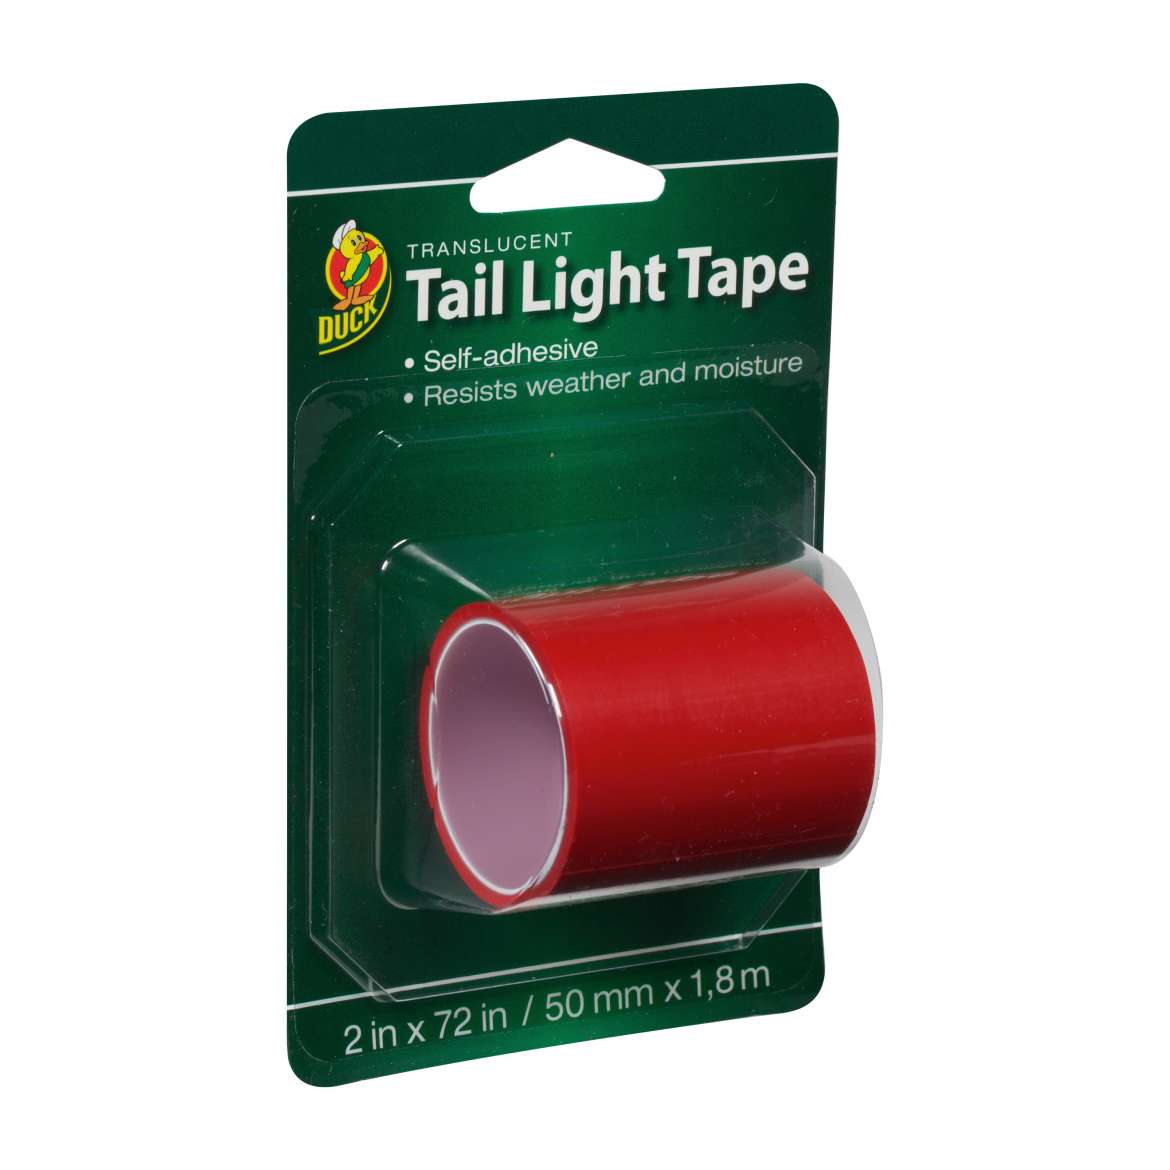 Duck® Brand Translucent Tail Light Tape - Red, 2 in. x 72 in. Image